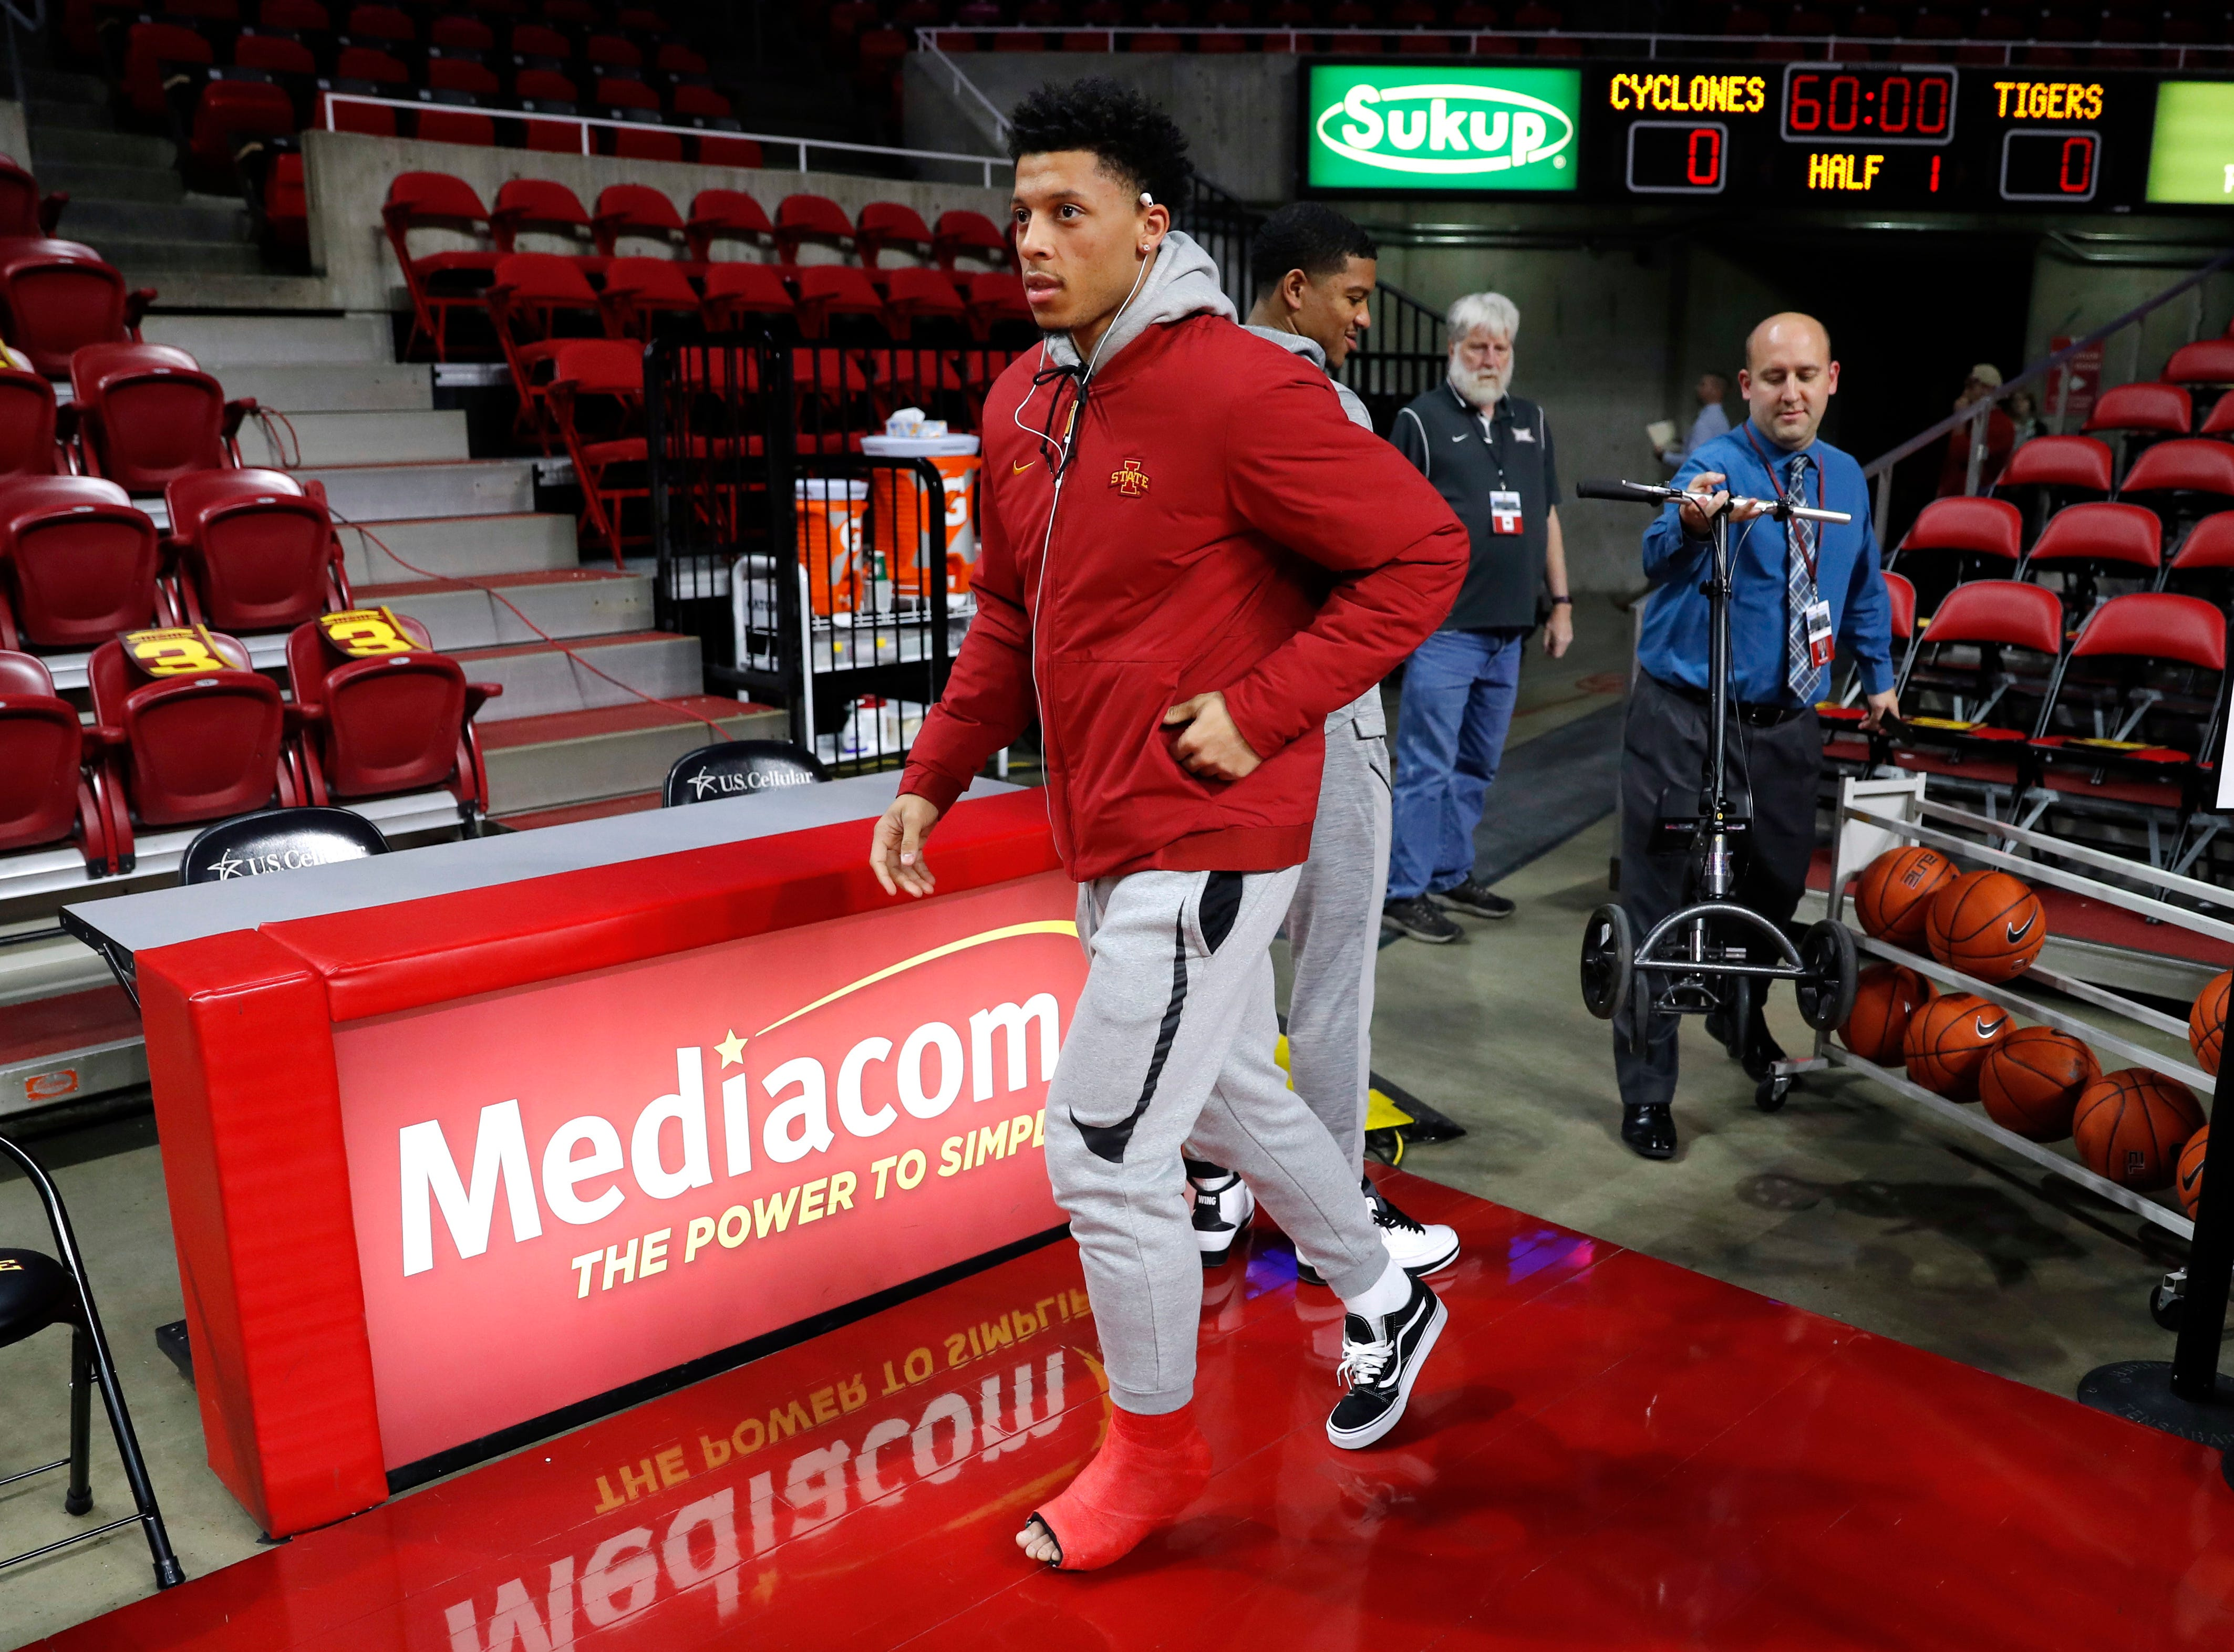 Injured Iowa State guard Lindell Wigginton walks onto the court before an NCAA college basketball game against Missouri, Friday, Nov. 9, 2018, in Ames, Iowa.